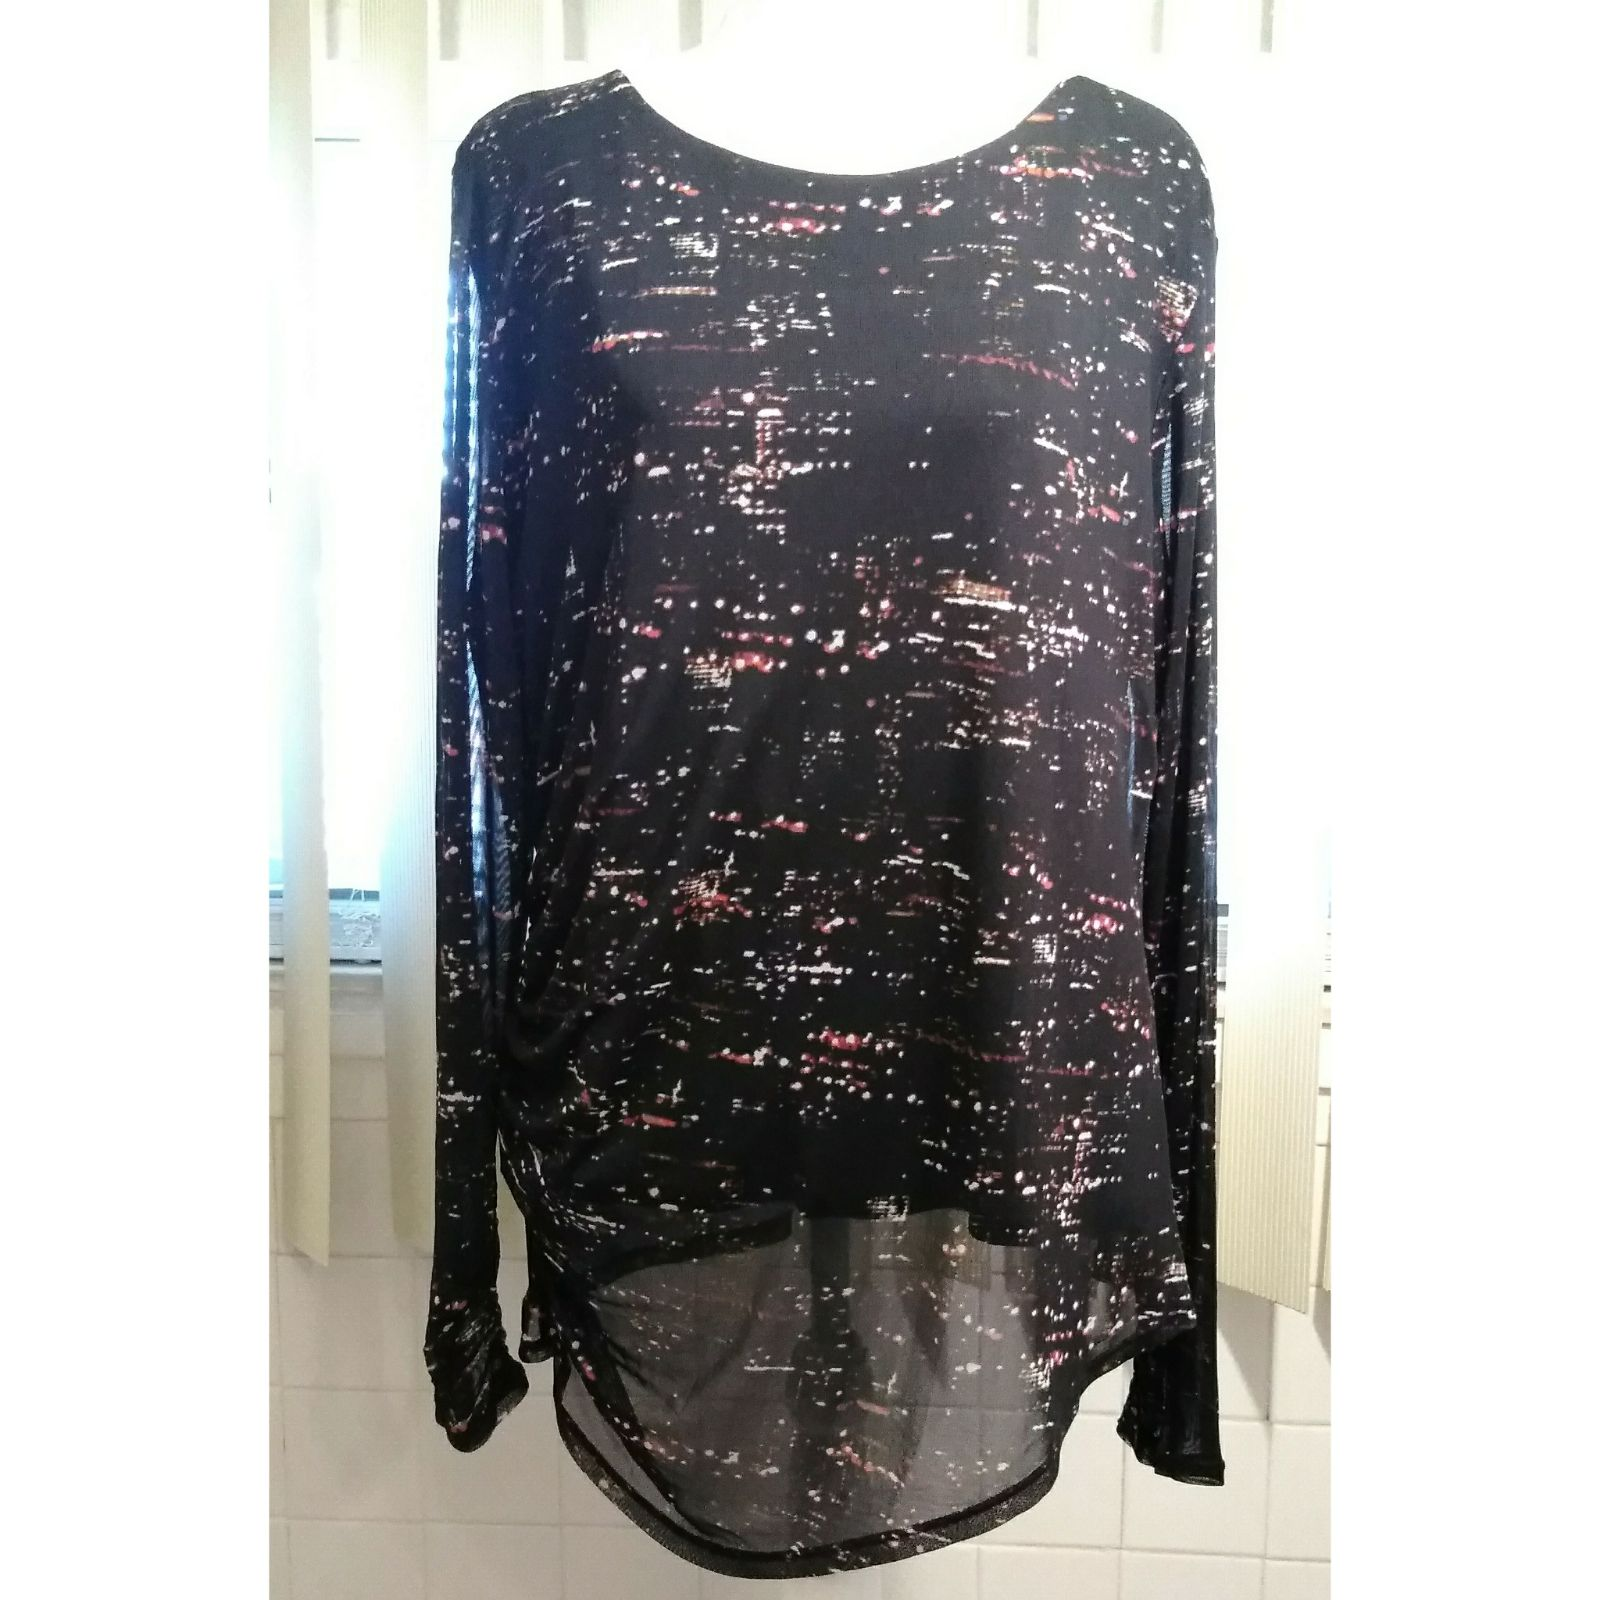 DKNY TOP/BLOUSE SIZE LARGE-SHEER